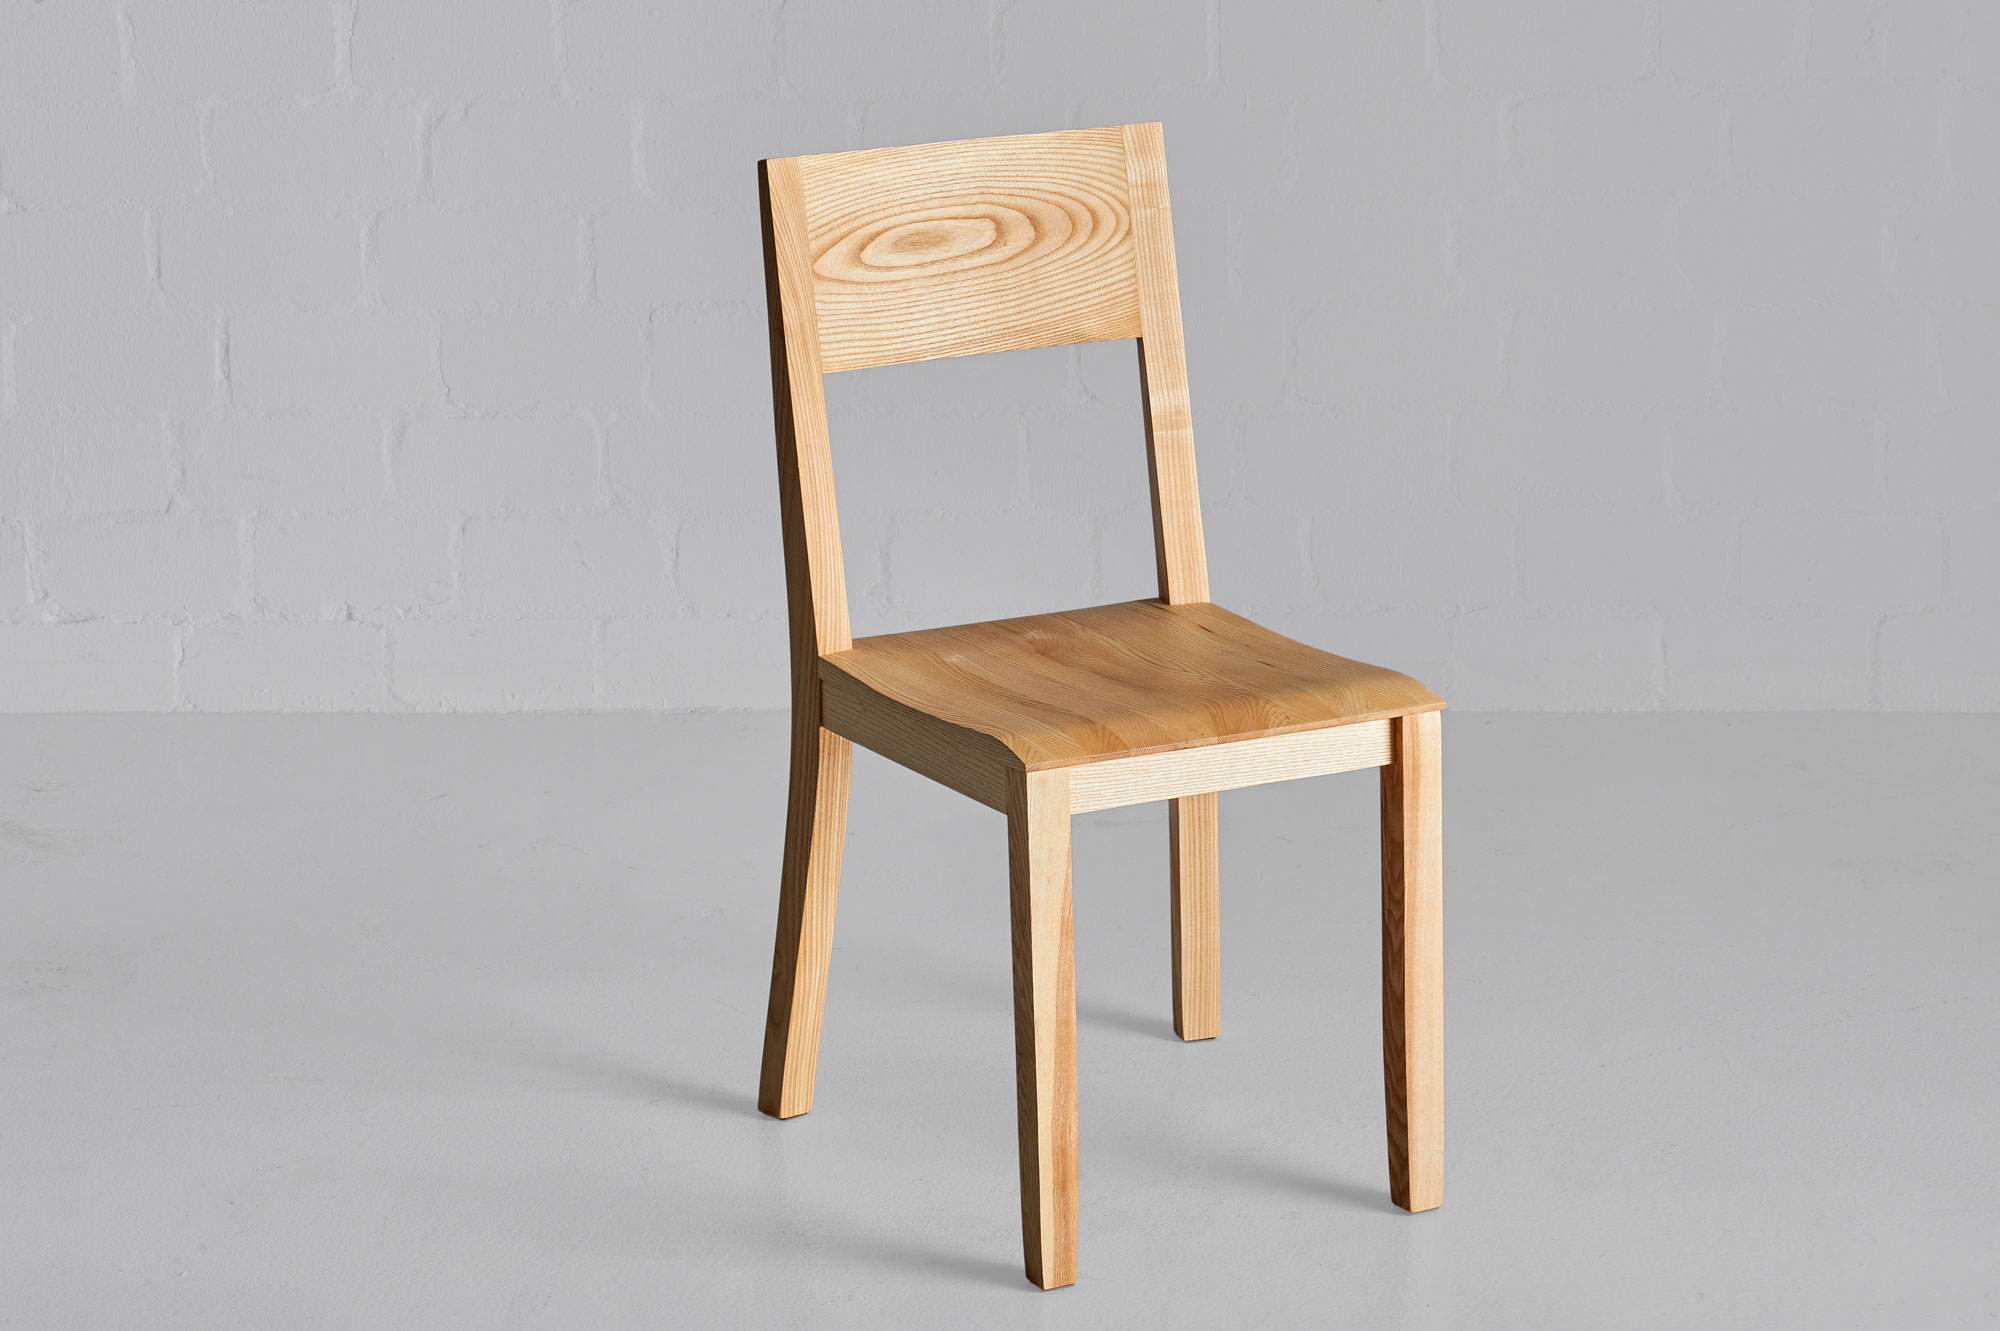 Dining Room Wooden Chair NOMI Nomi4562 custom made in solid wood by vitamin design